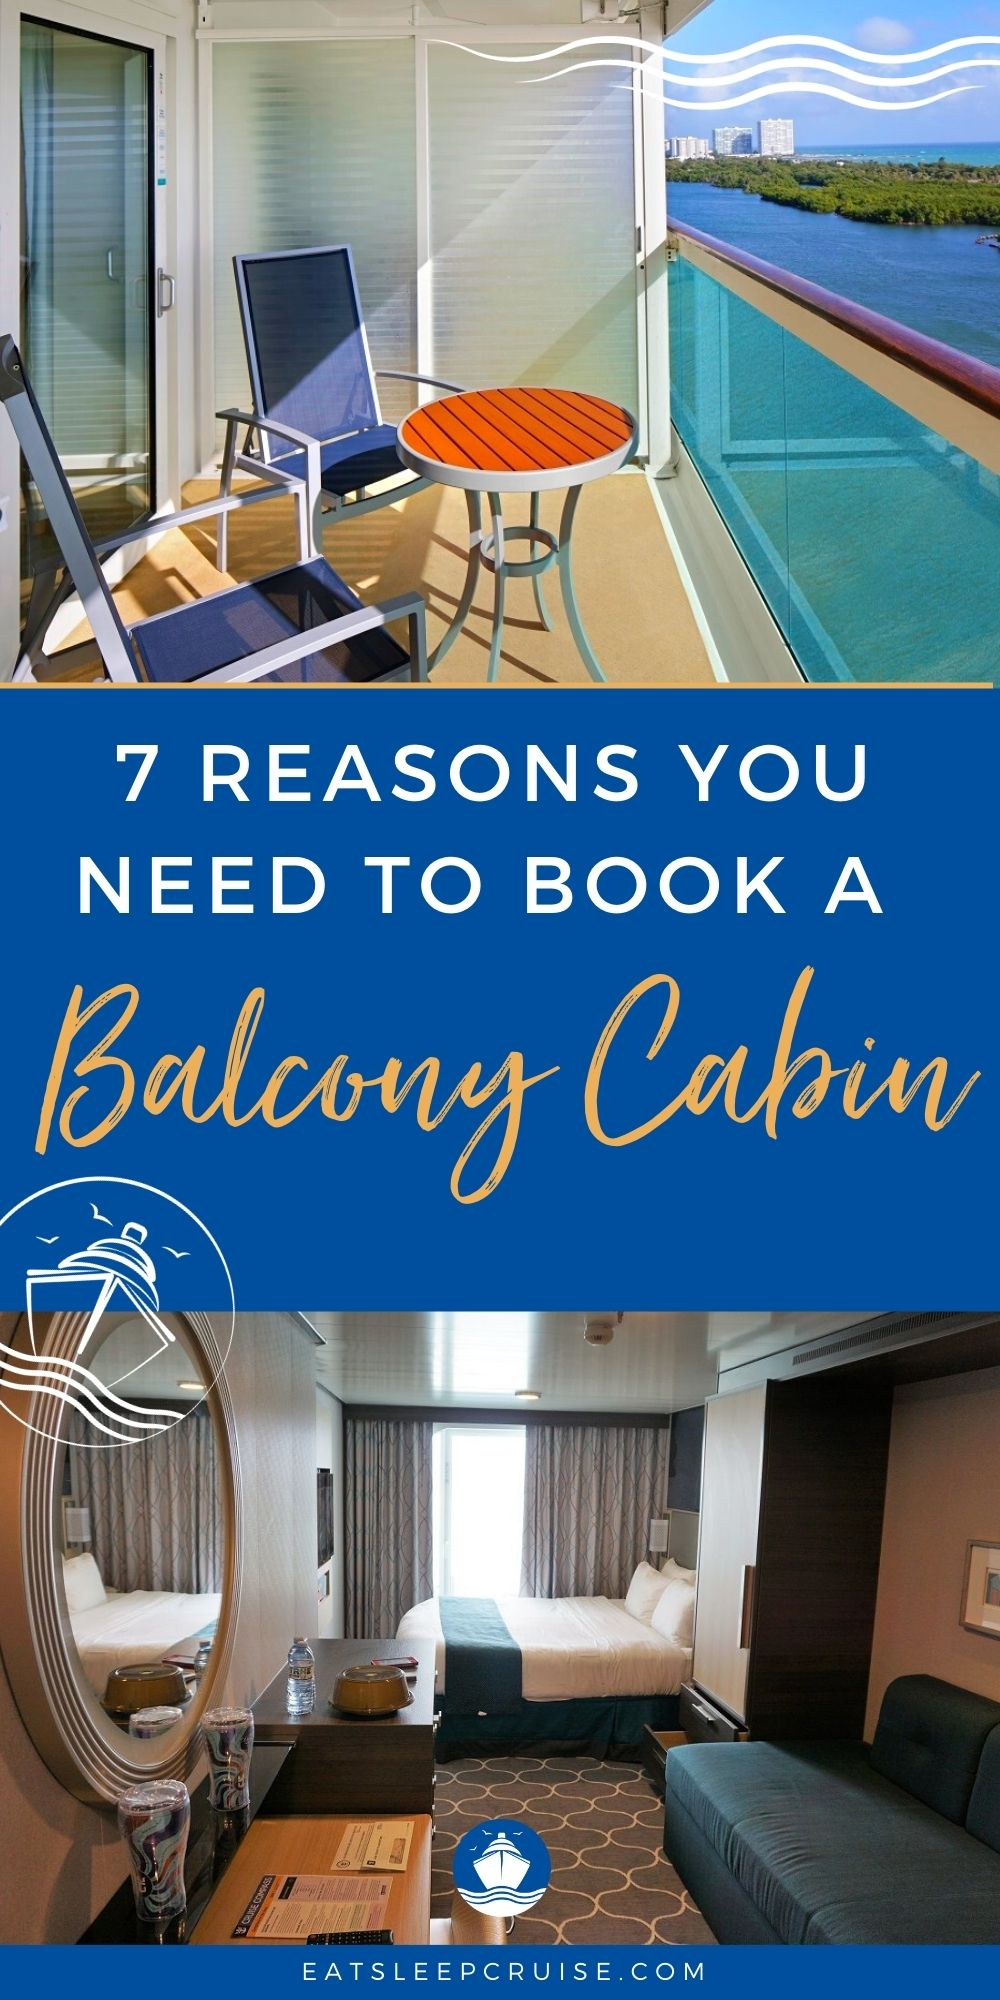 7 Reasons to Book a Balcony Cabin